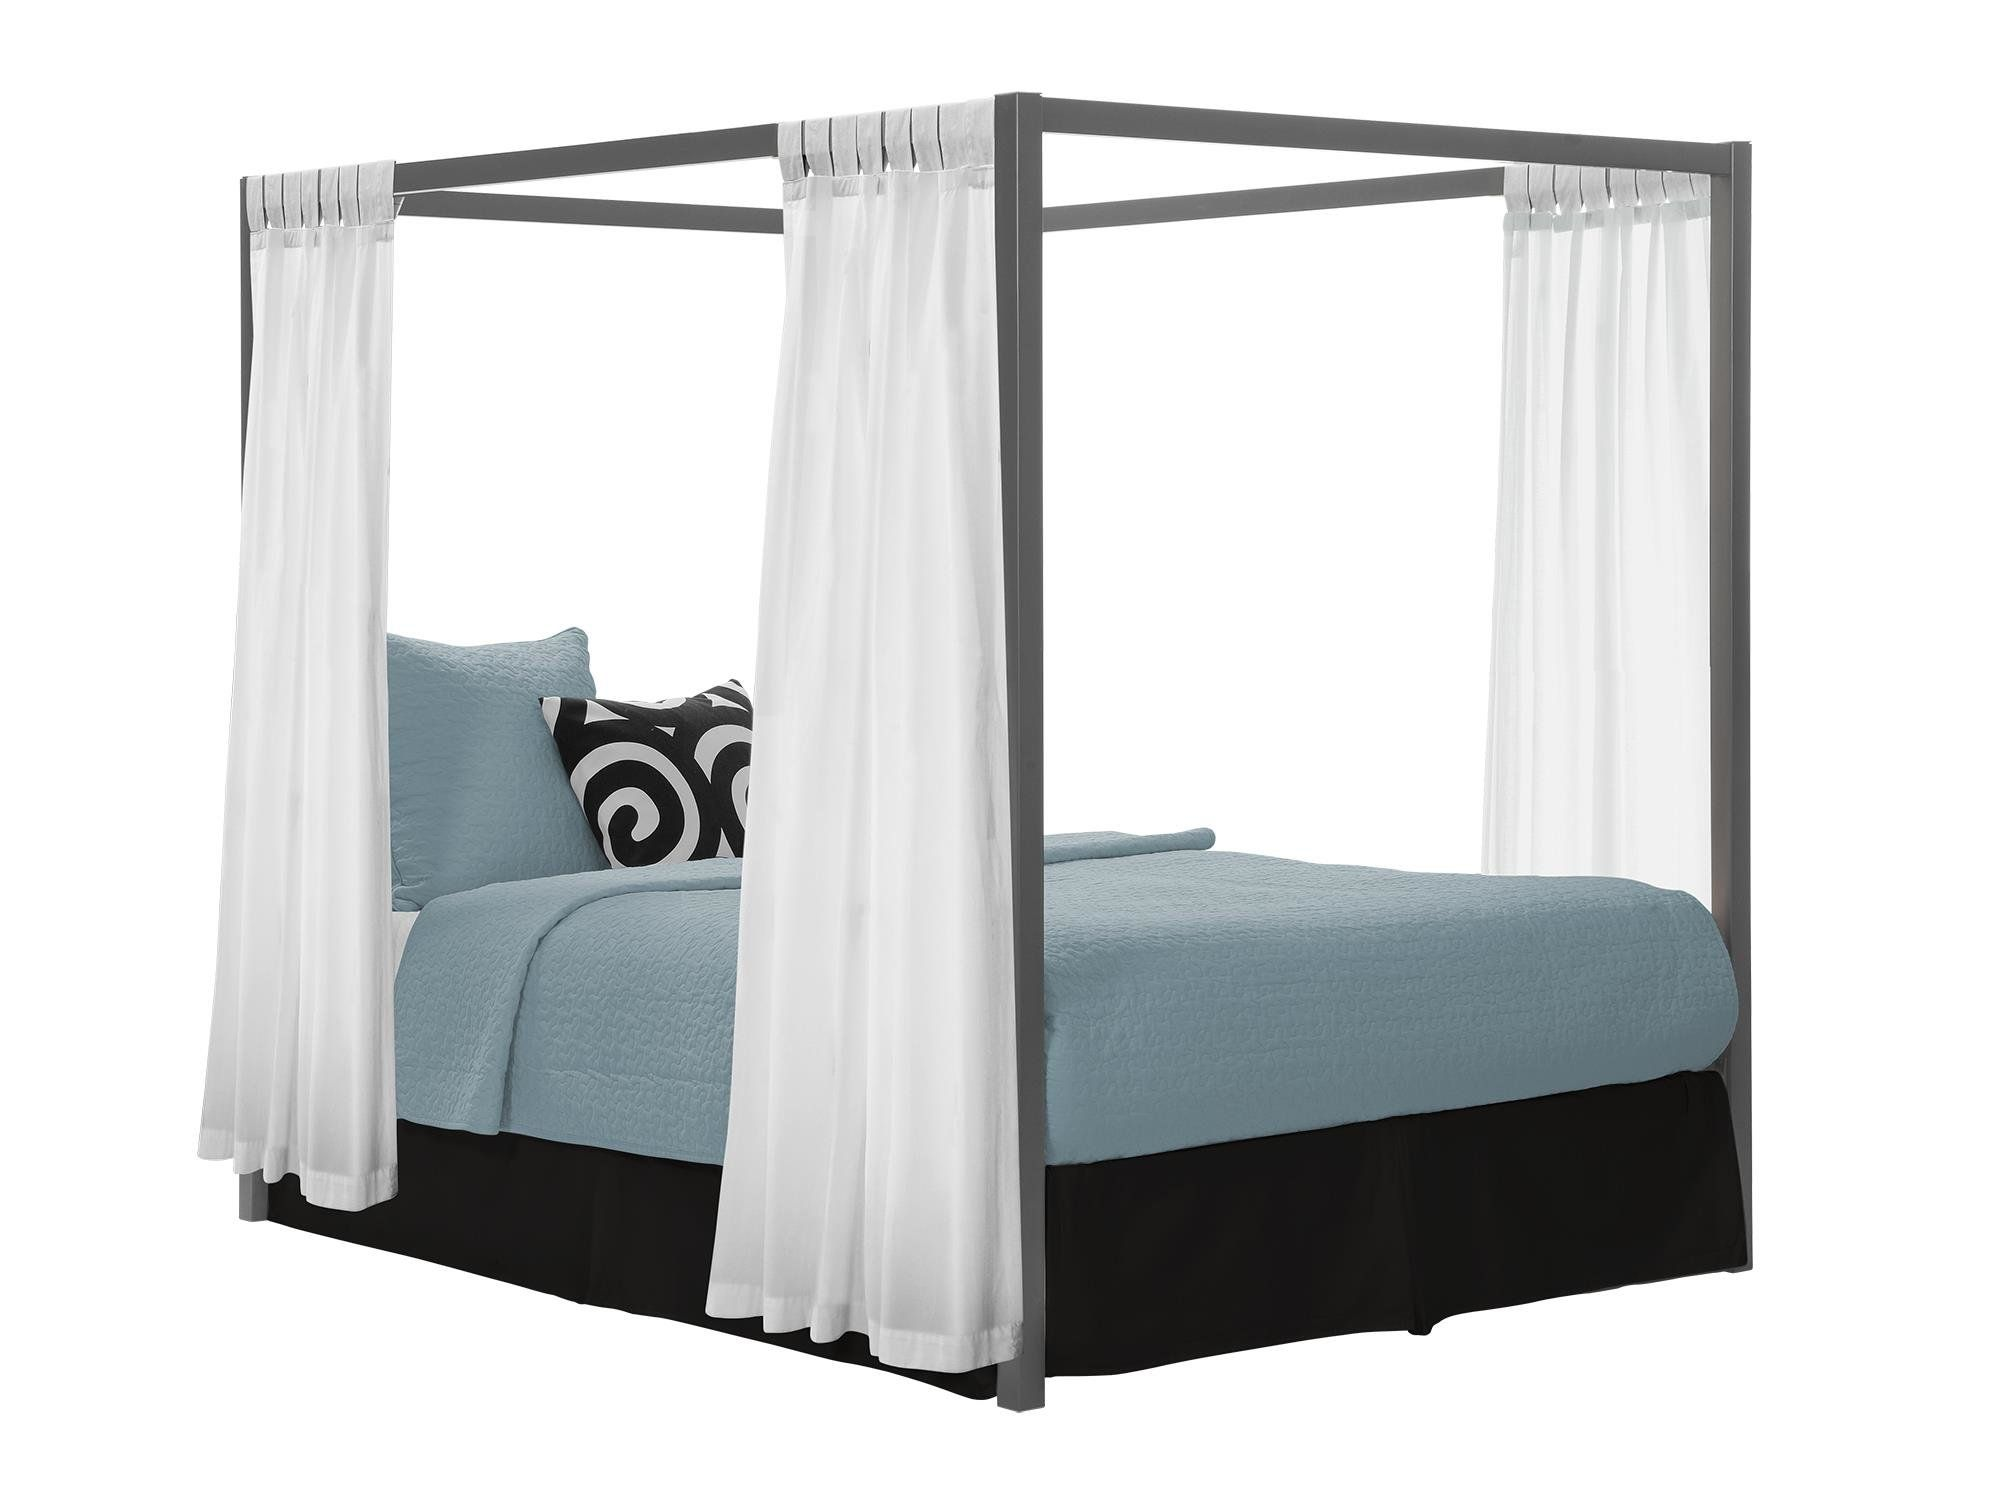 Felice queen canopy bed for the house metal canopy bed